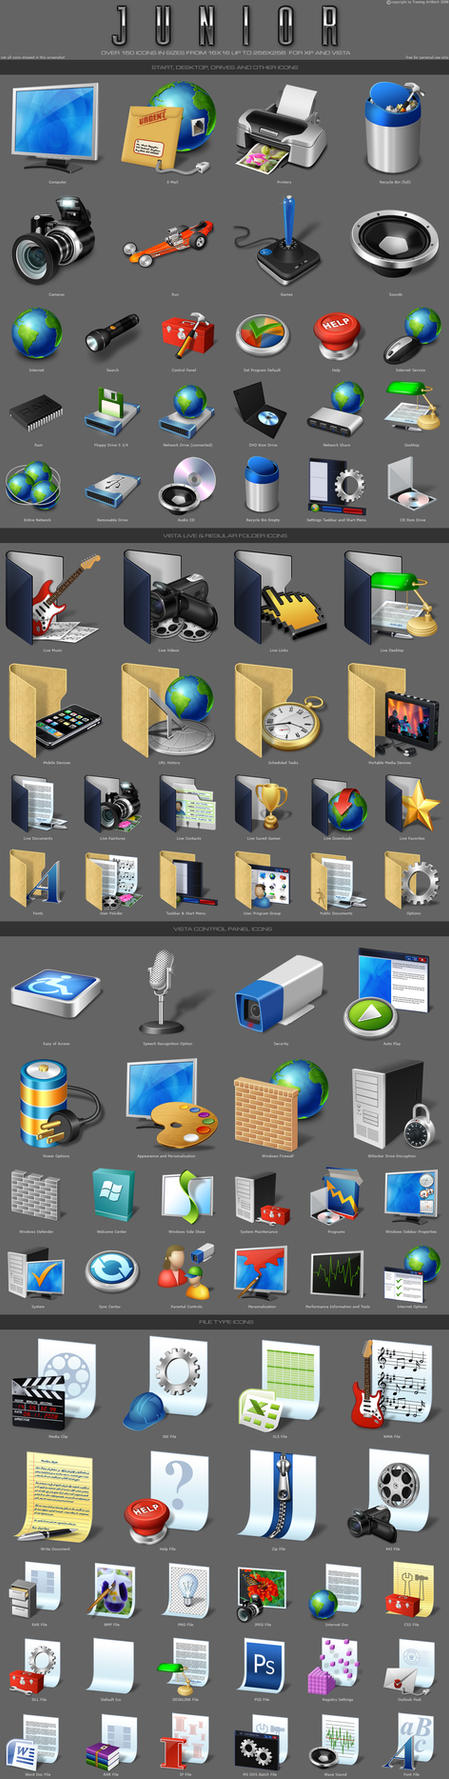 Junior by treetog